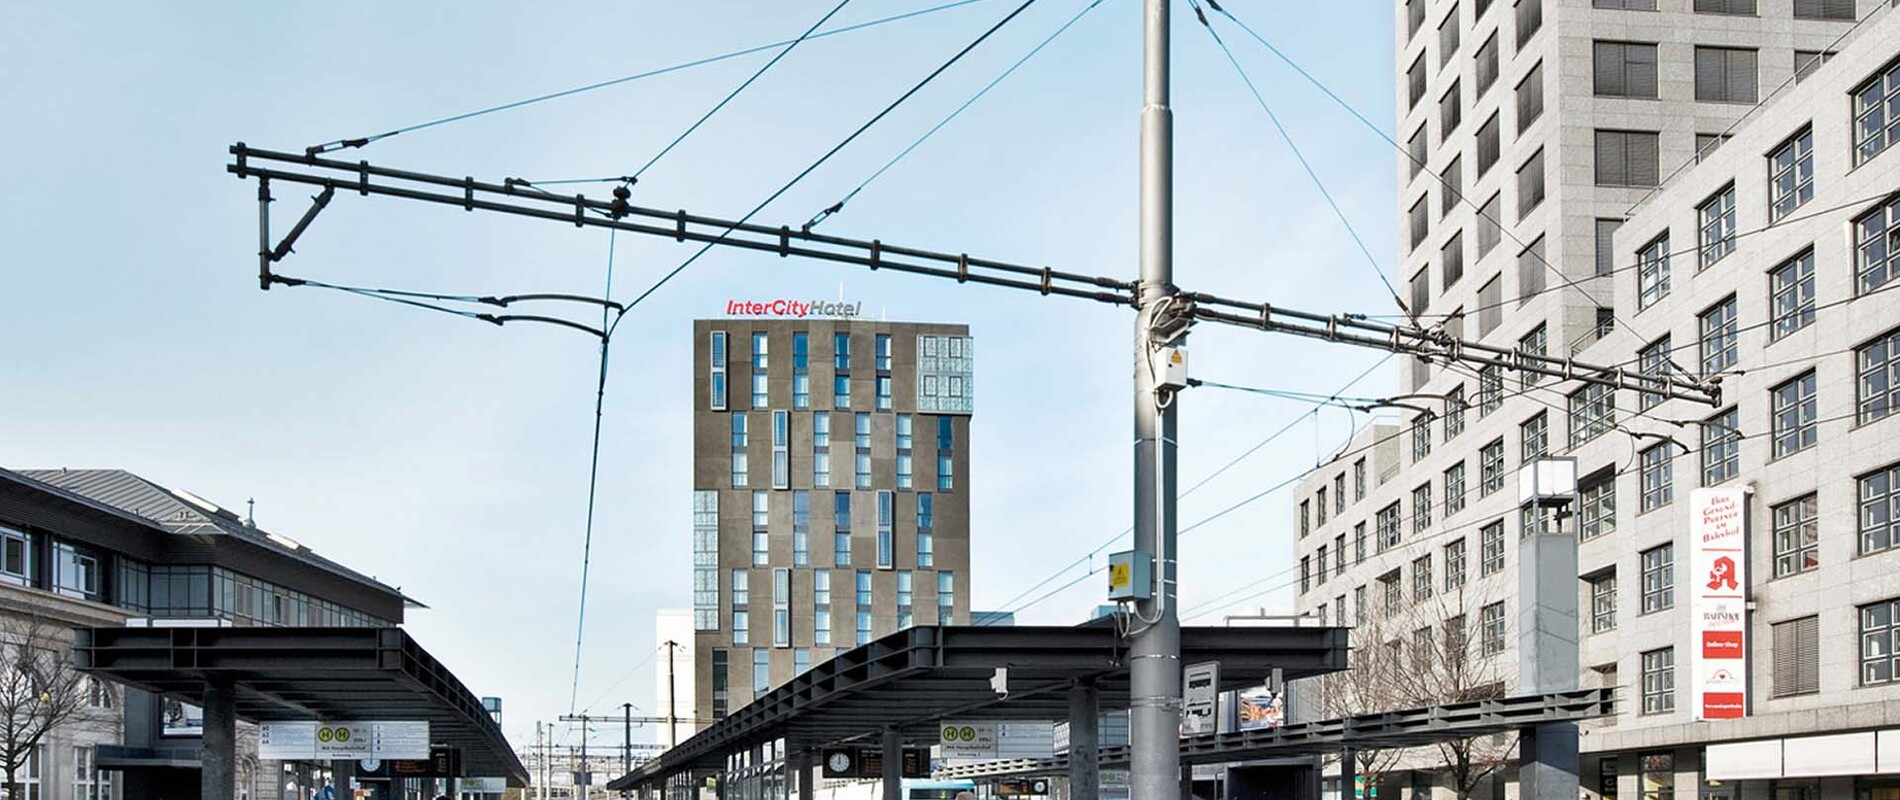 Office space and hotel - twelve-storey building - Euro City Center West Mannheim - view from the train station